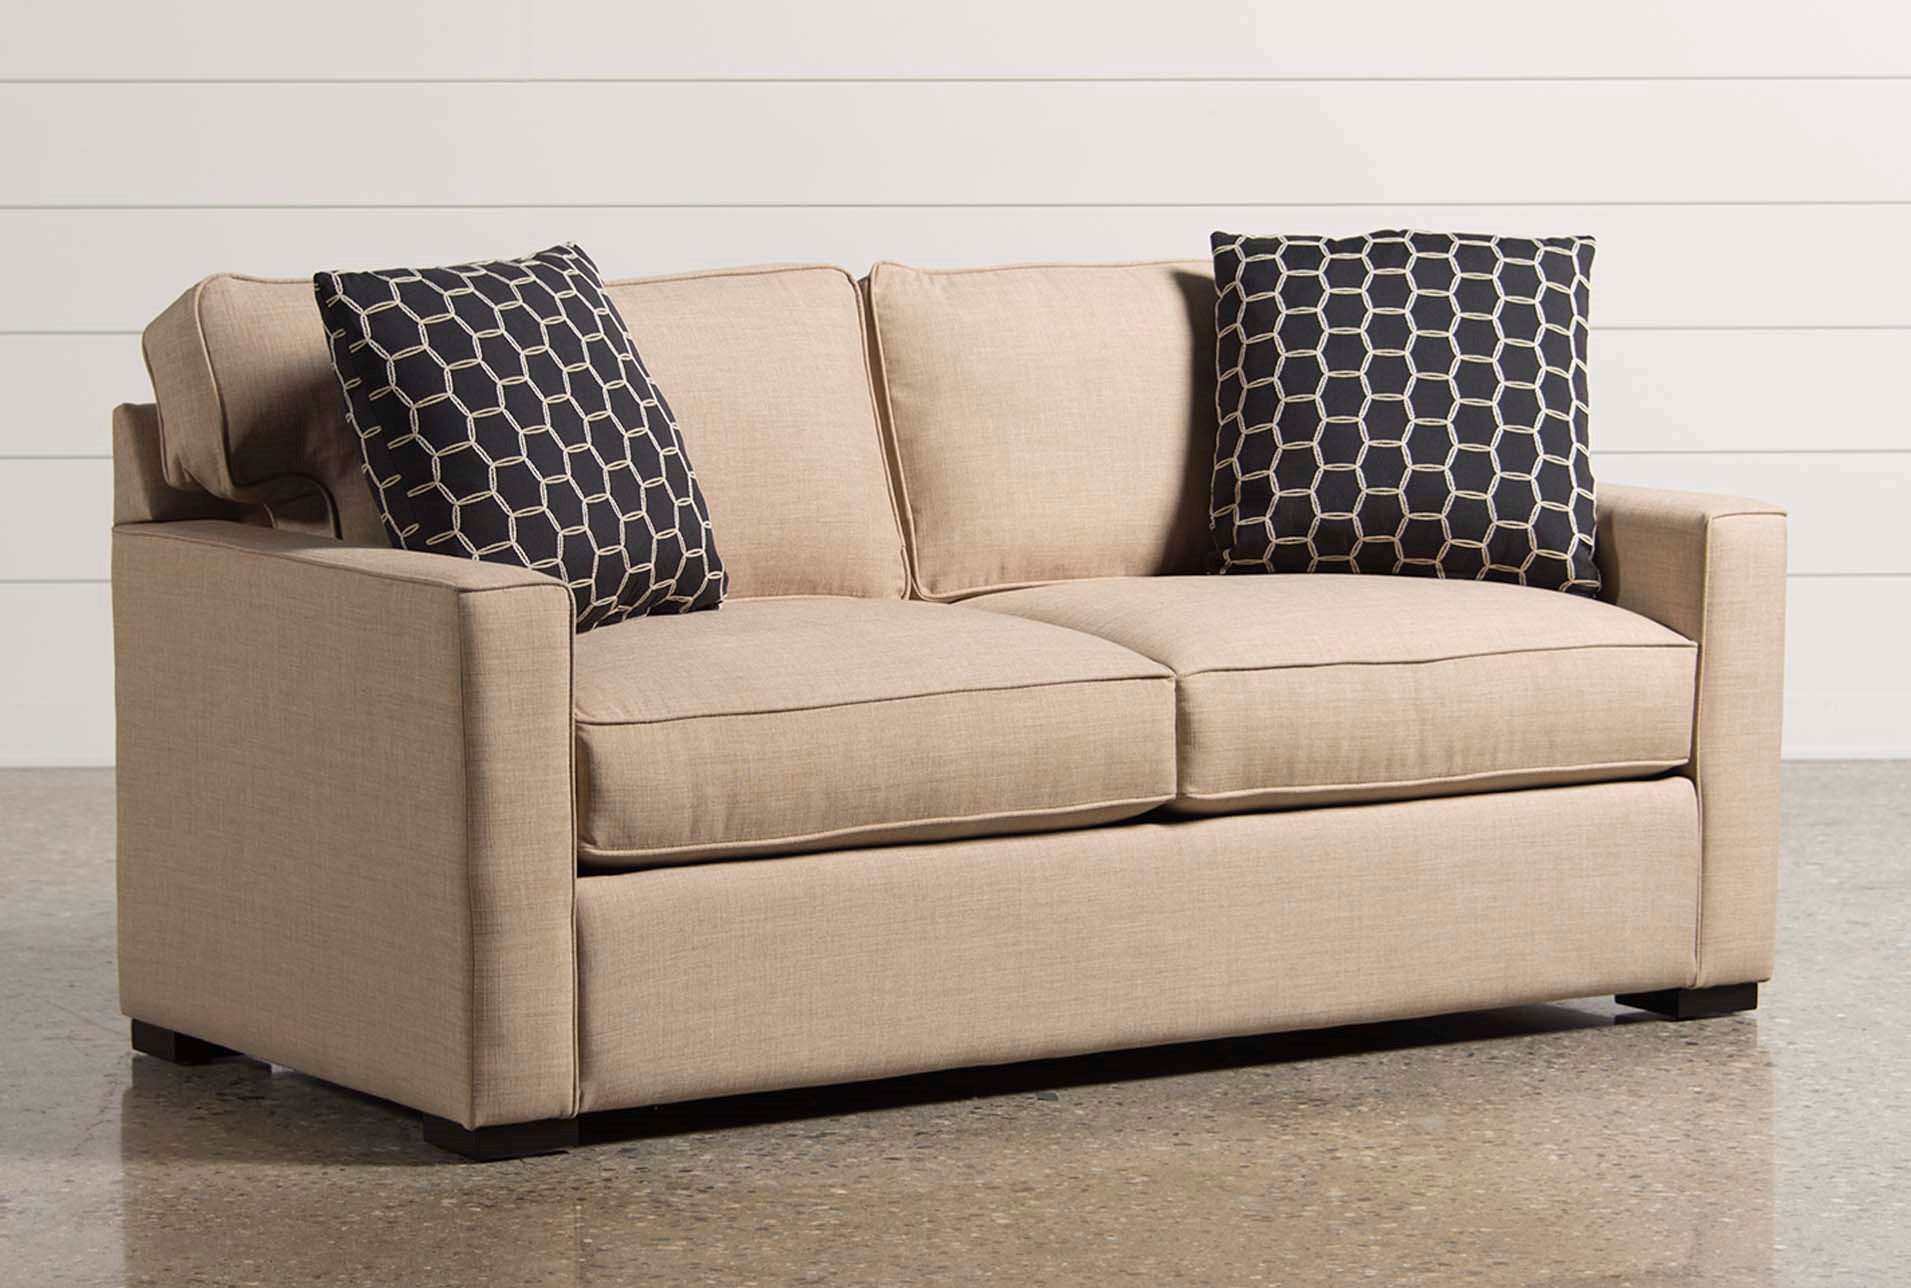 taffy sleeper queen remarkable microfiber sofa rory sectional of size rated full design best